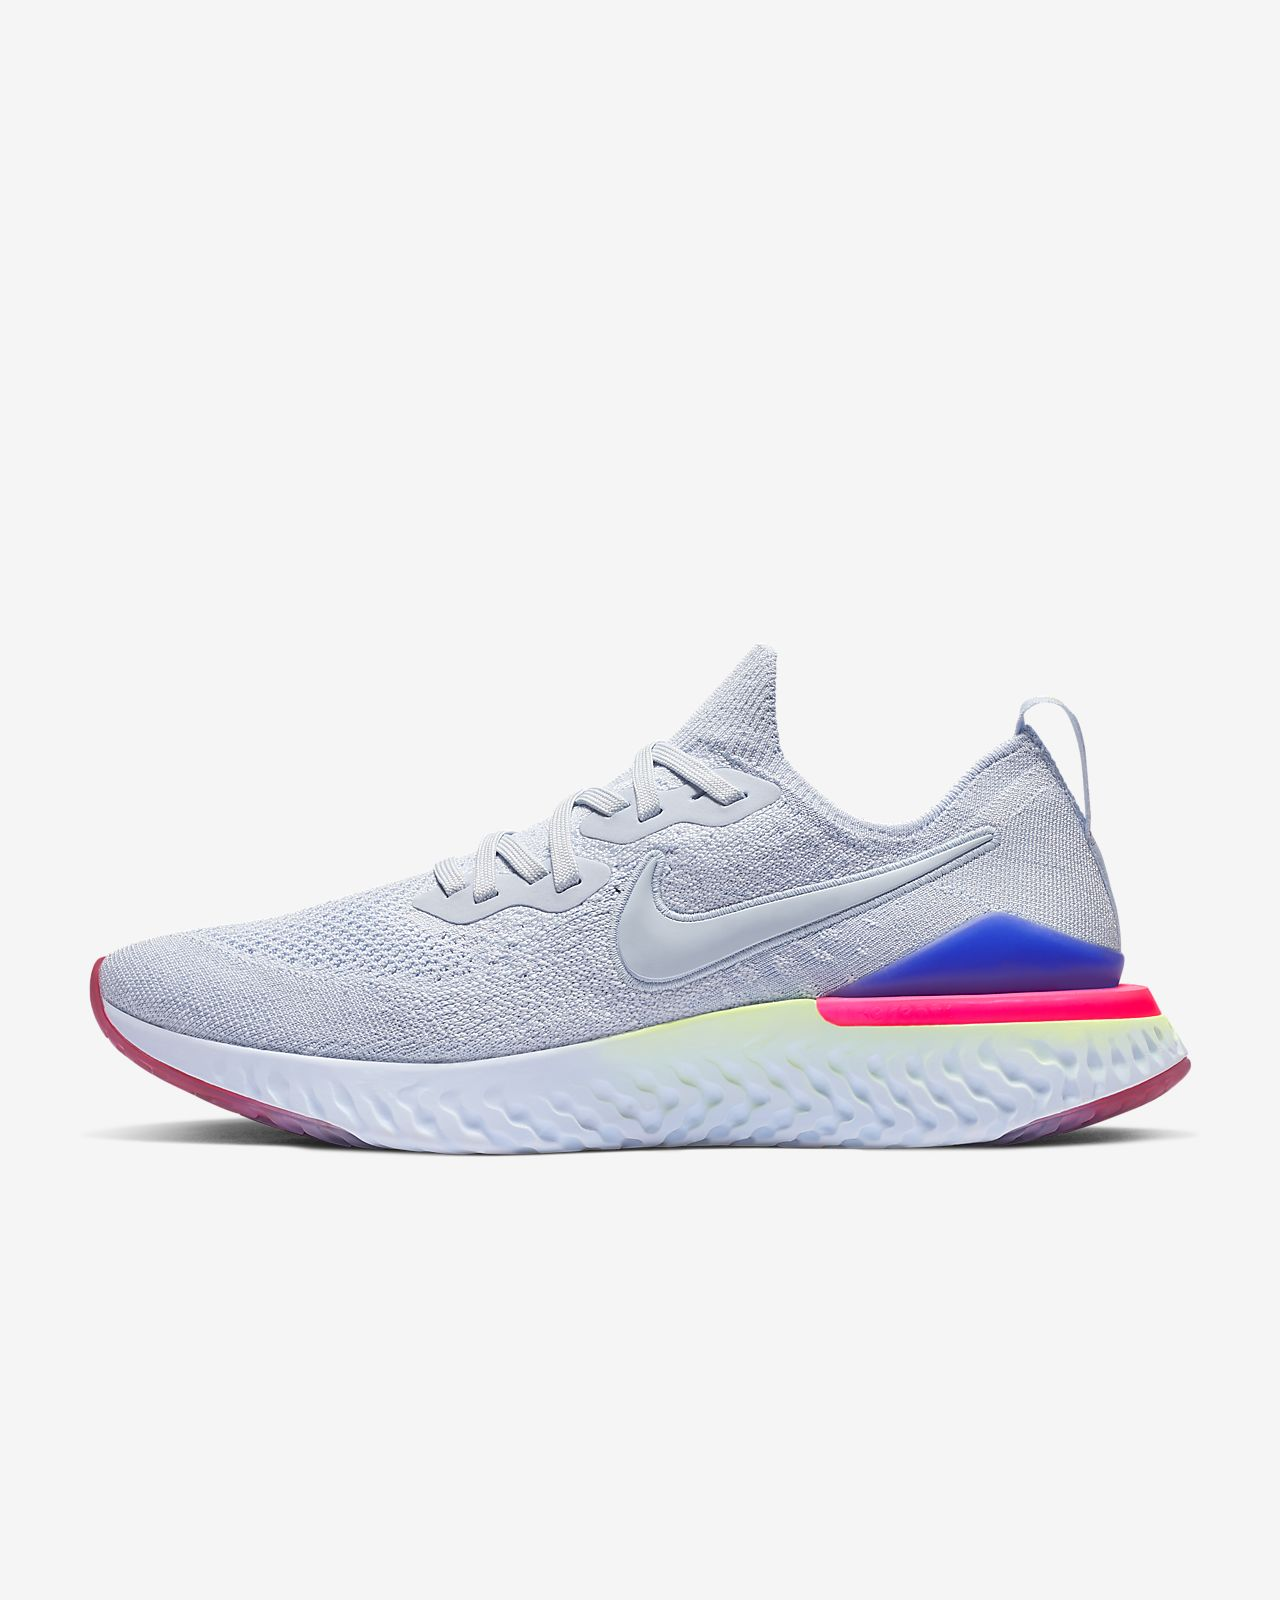 b6dfa1760755 Nike Epic React Flyknit 2 Men s Running Shoe. Nike.com GB